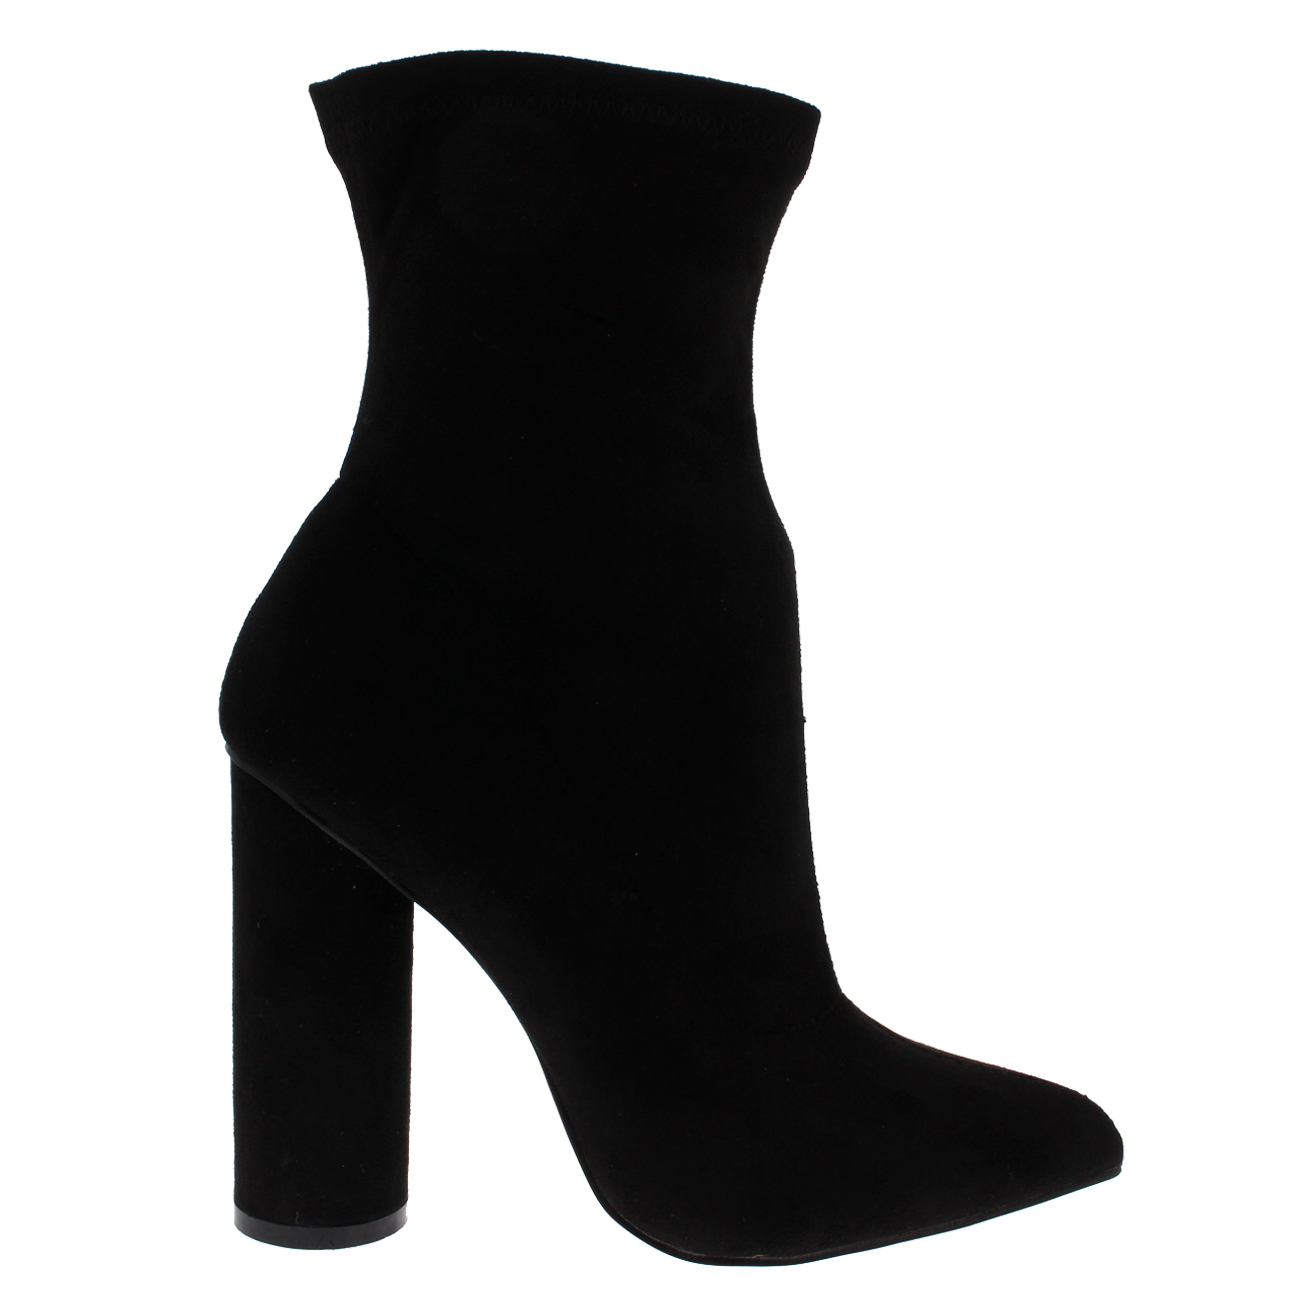 11c56f224366 Womens Pointed Toe Sock Fit Chic Fashion Block Heel Dress Ankle Boots US  5-12